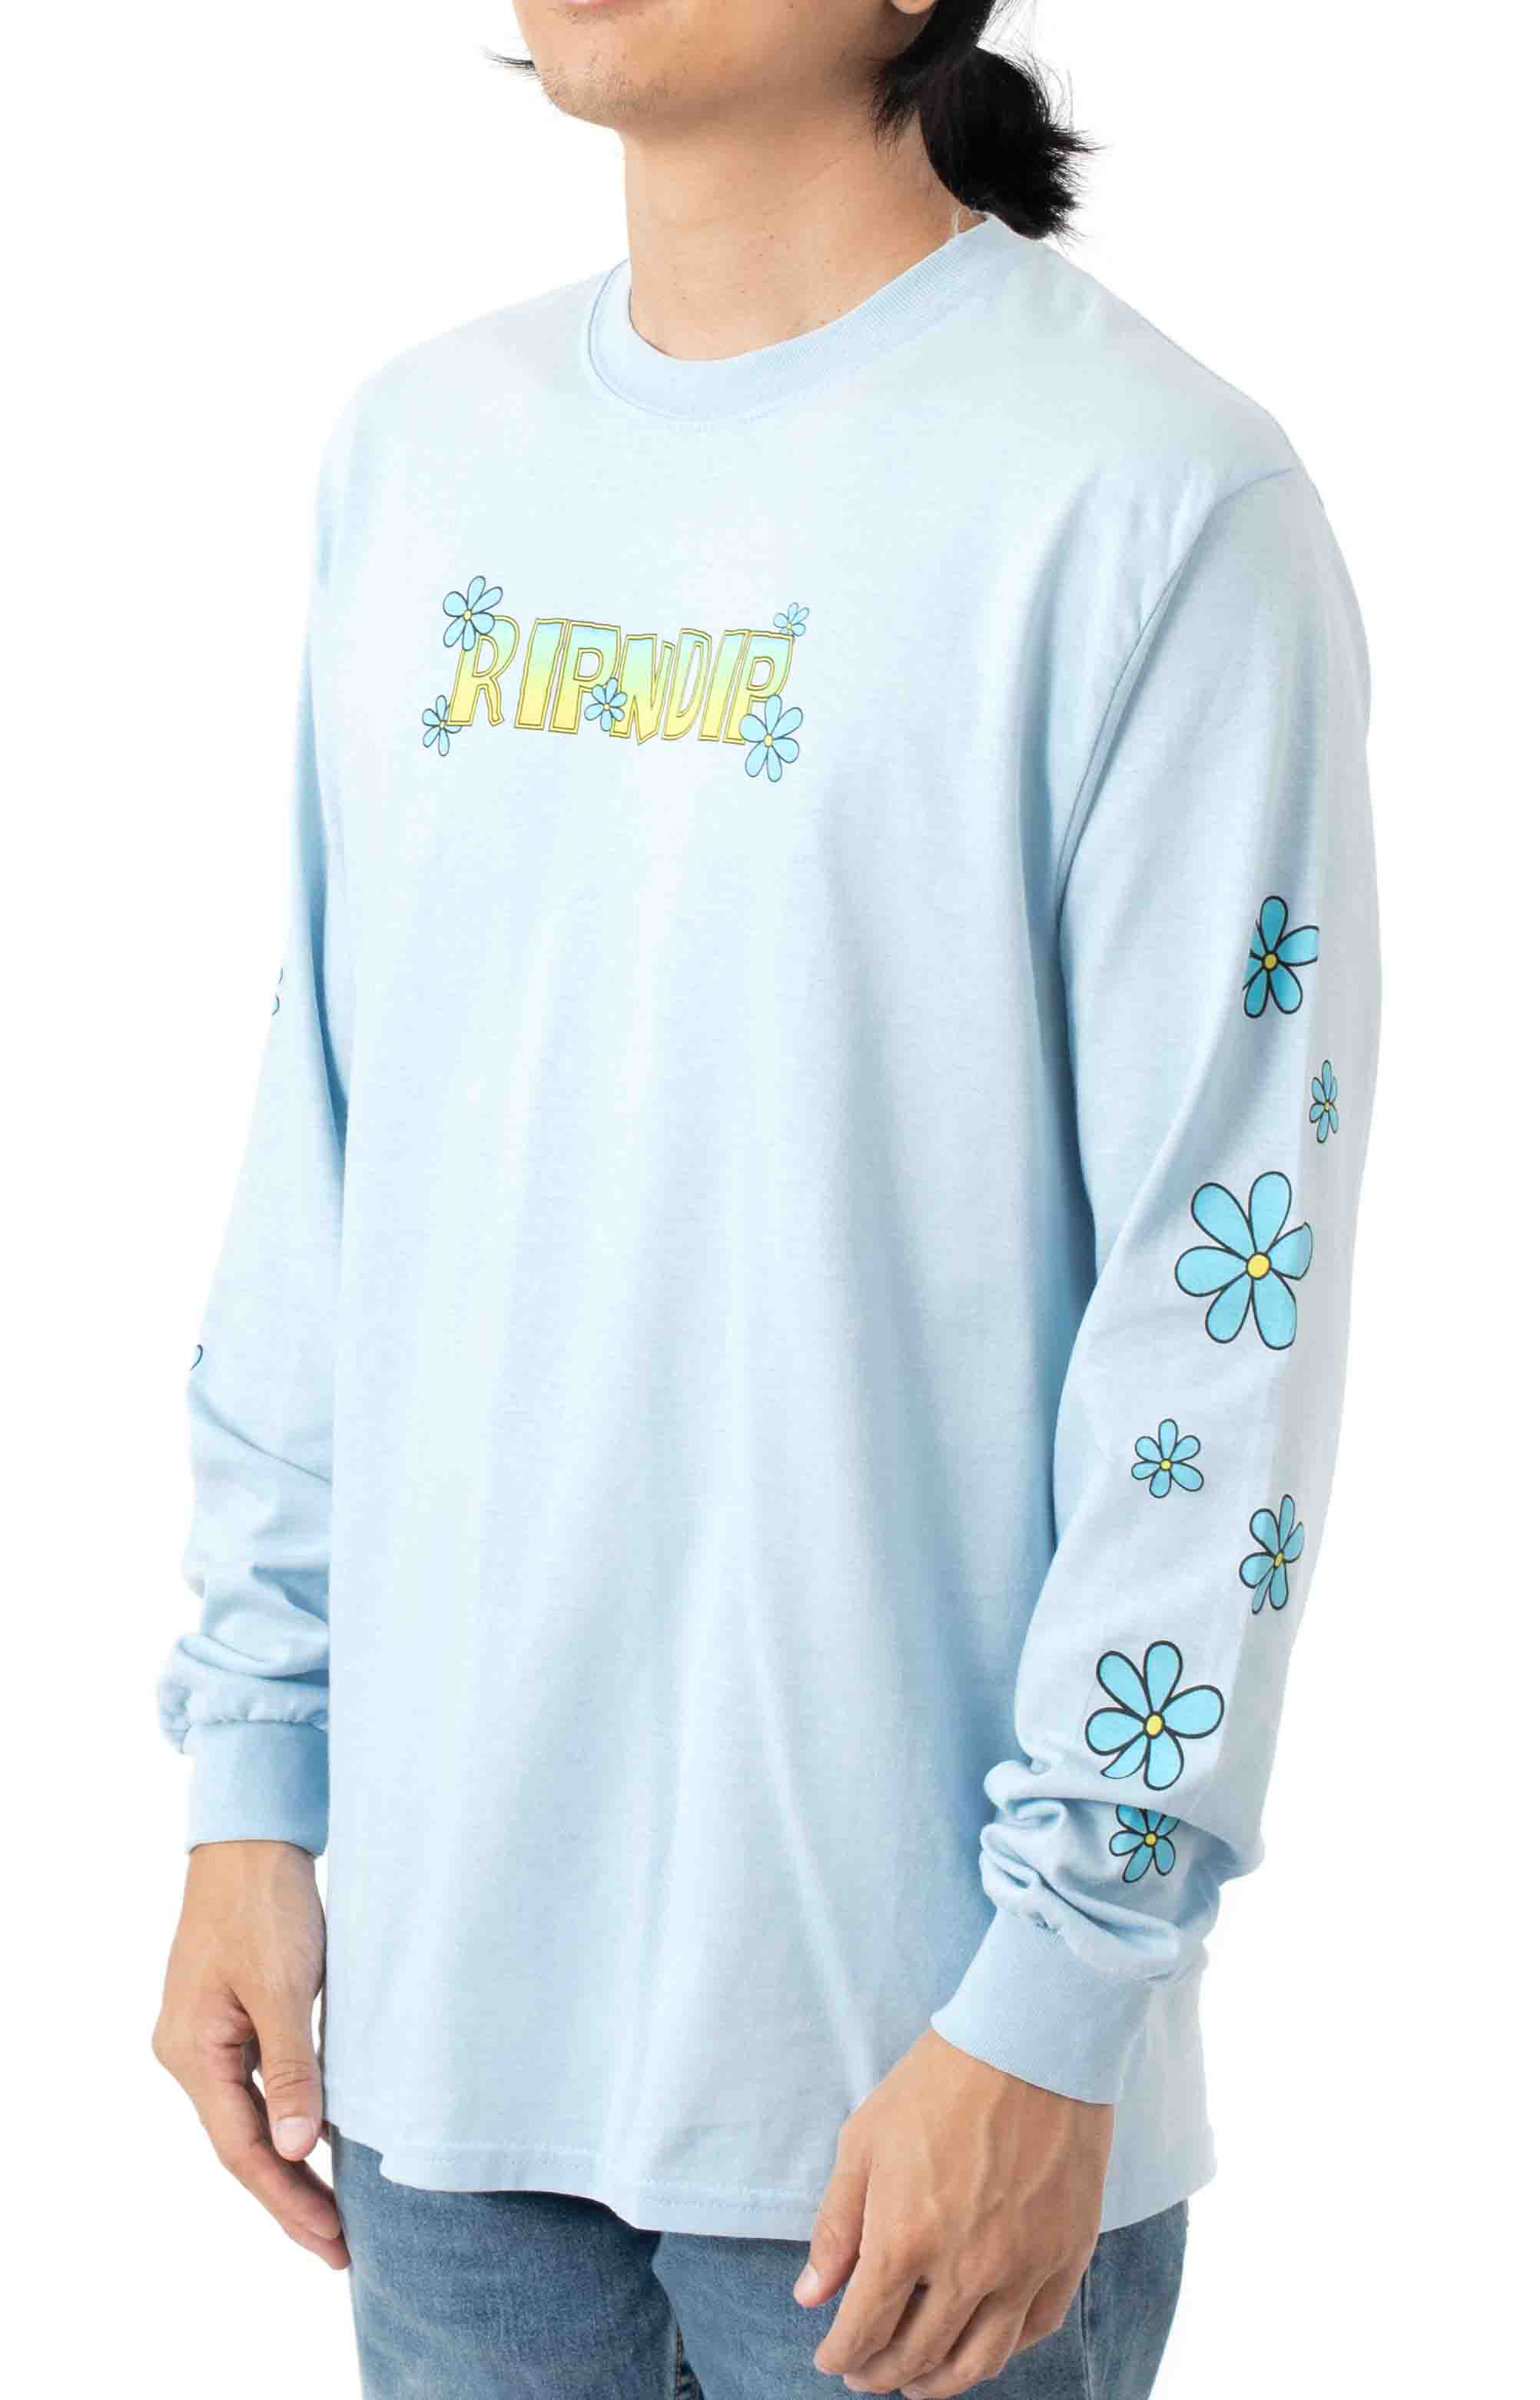 Lonely Lover L/S Shirt - Light Blue  2